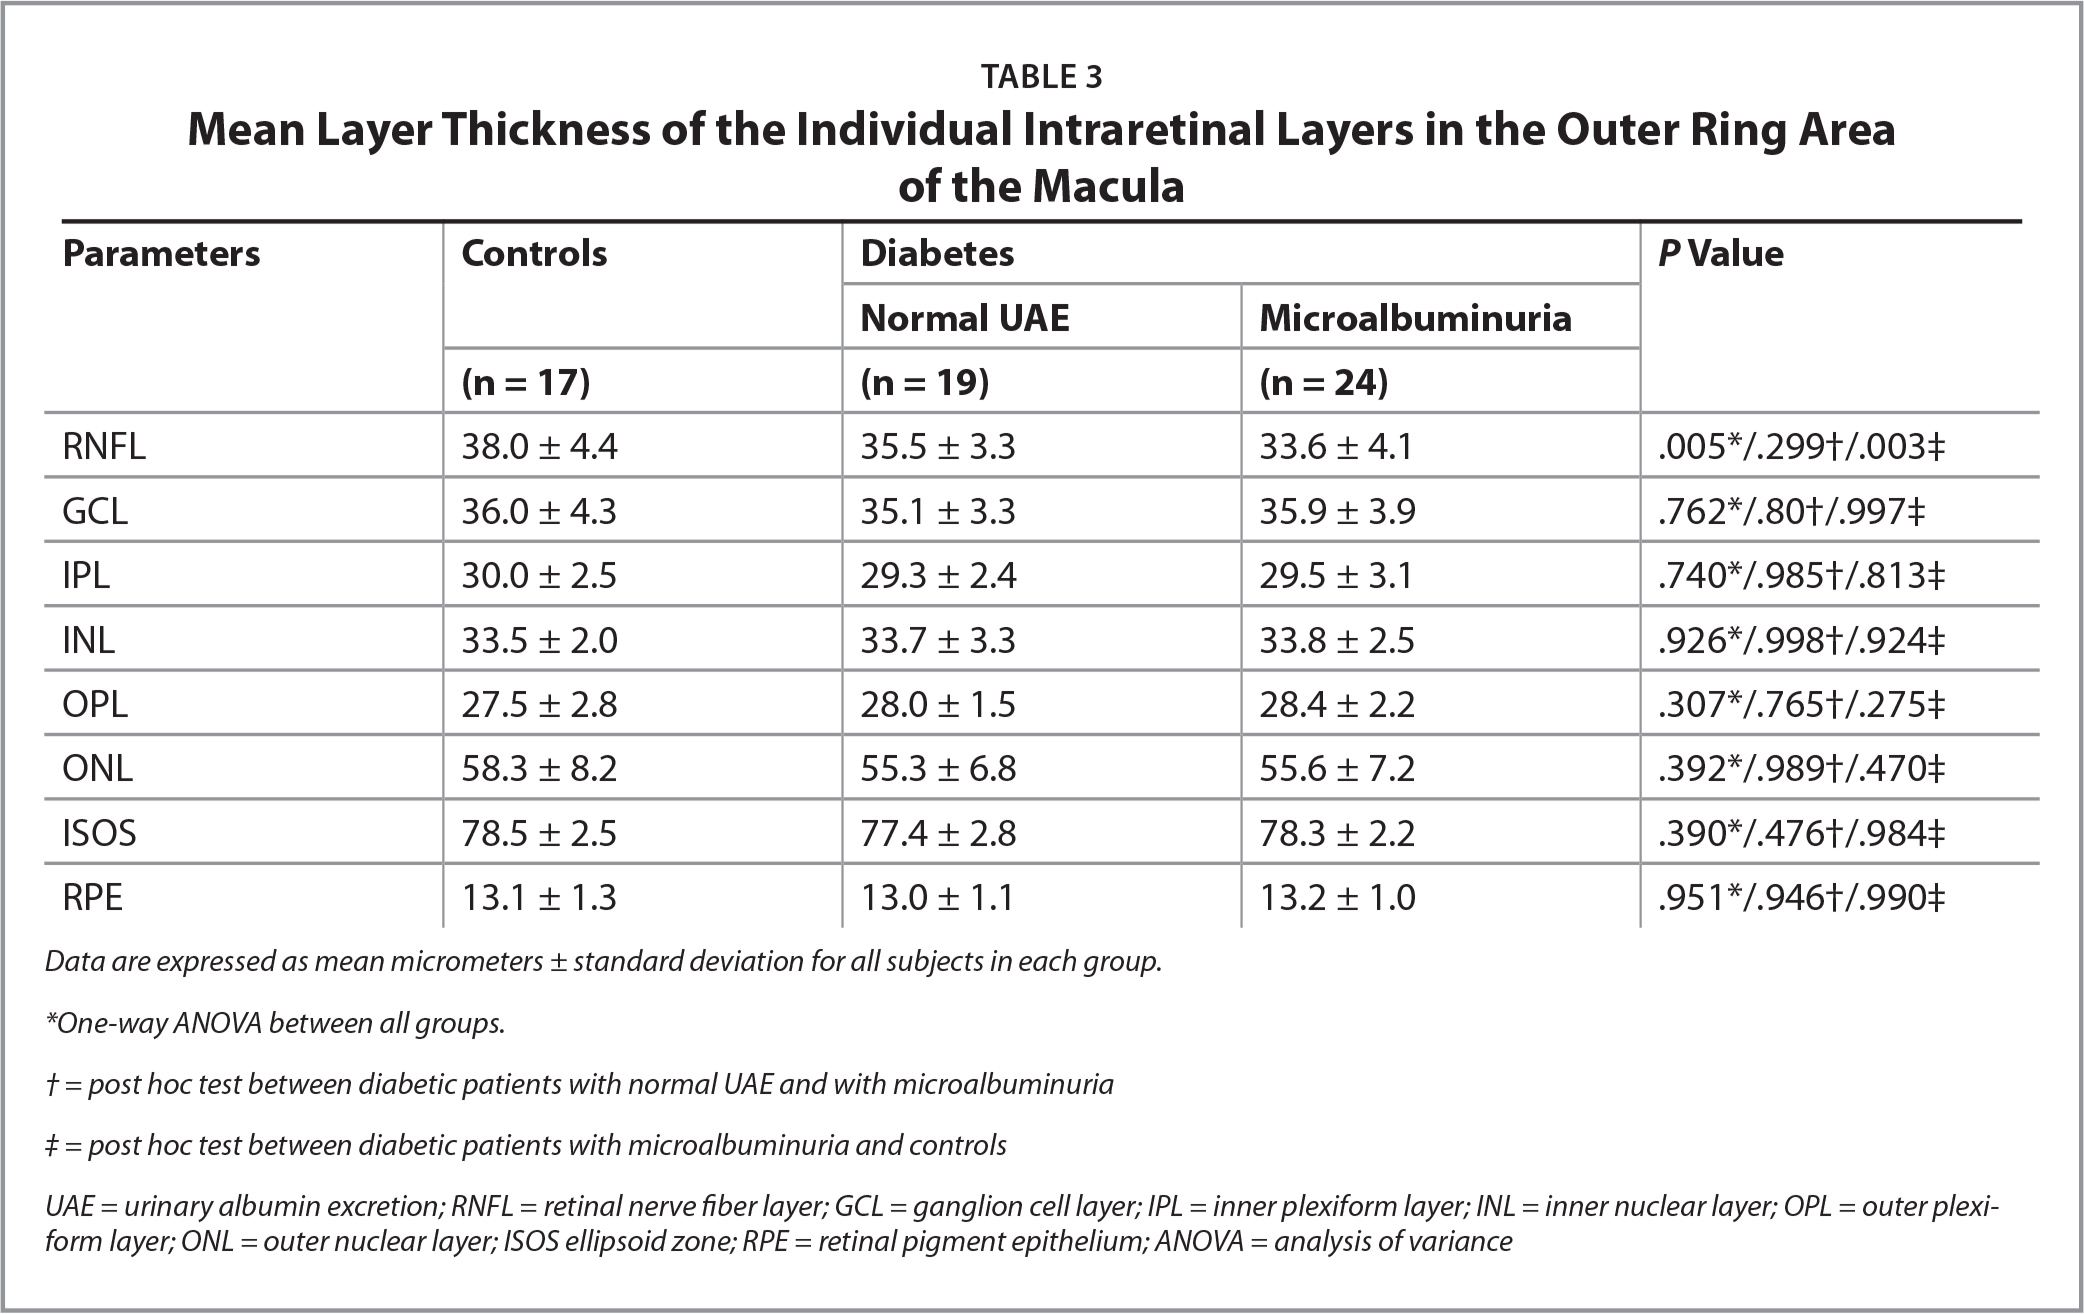 Mean Layer Thickness of the Individual Intraretinal Layers in the Outer Ring Areaof the Macula